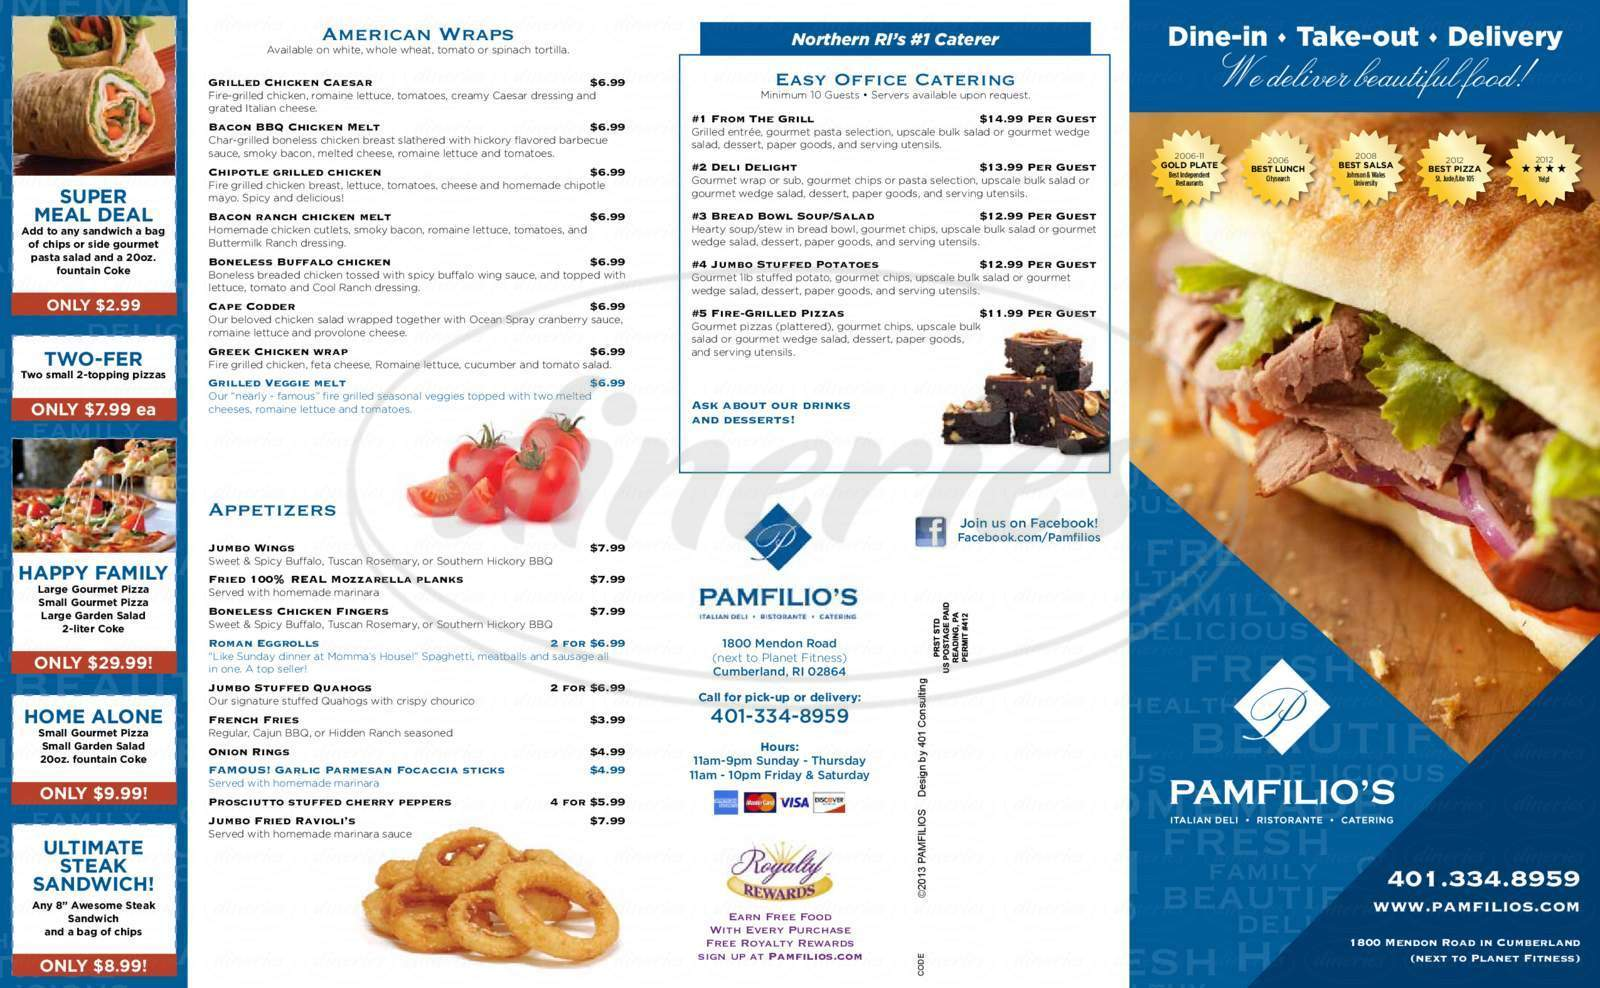 menu for Pamfilio's Italian Restaurant & Catering